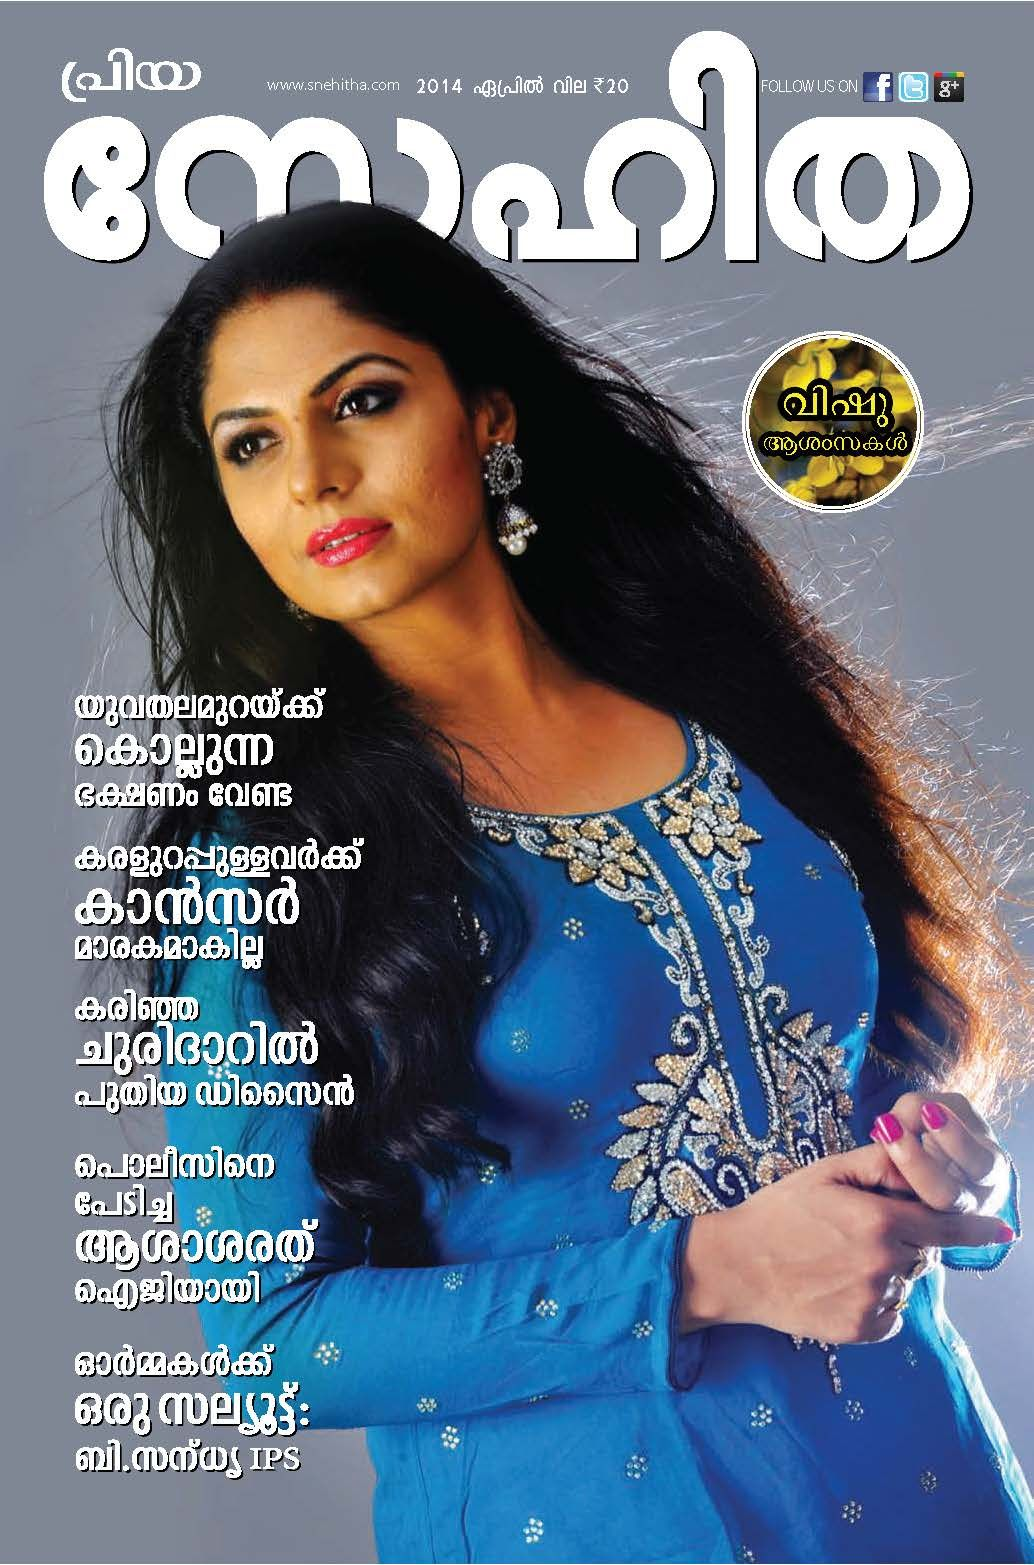 Snehitha Malayalam Magazine  Buy, Subscribe, Download And Read Snehitha On  Your Ipad,